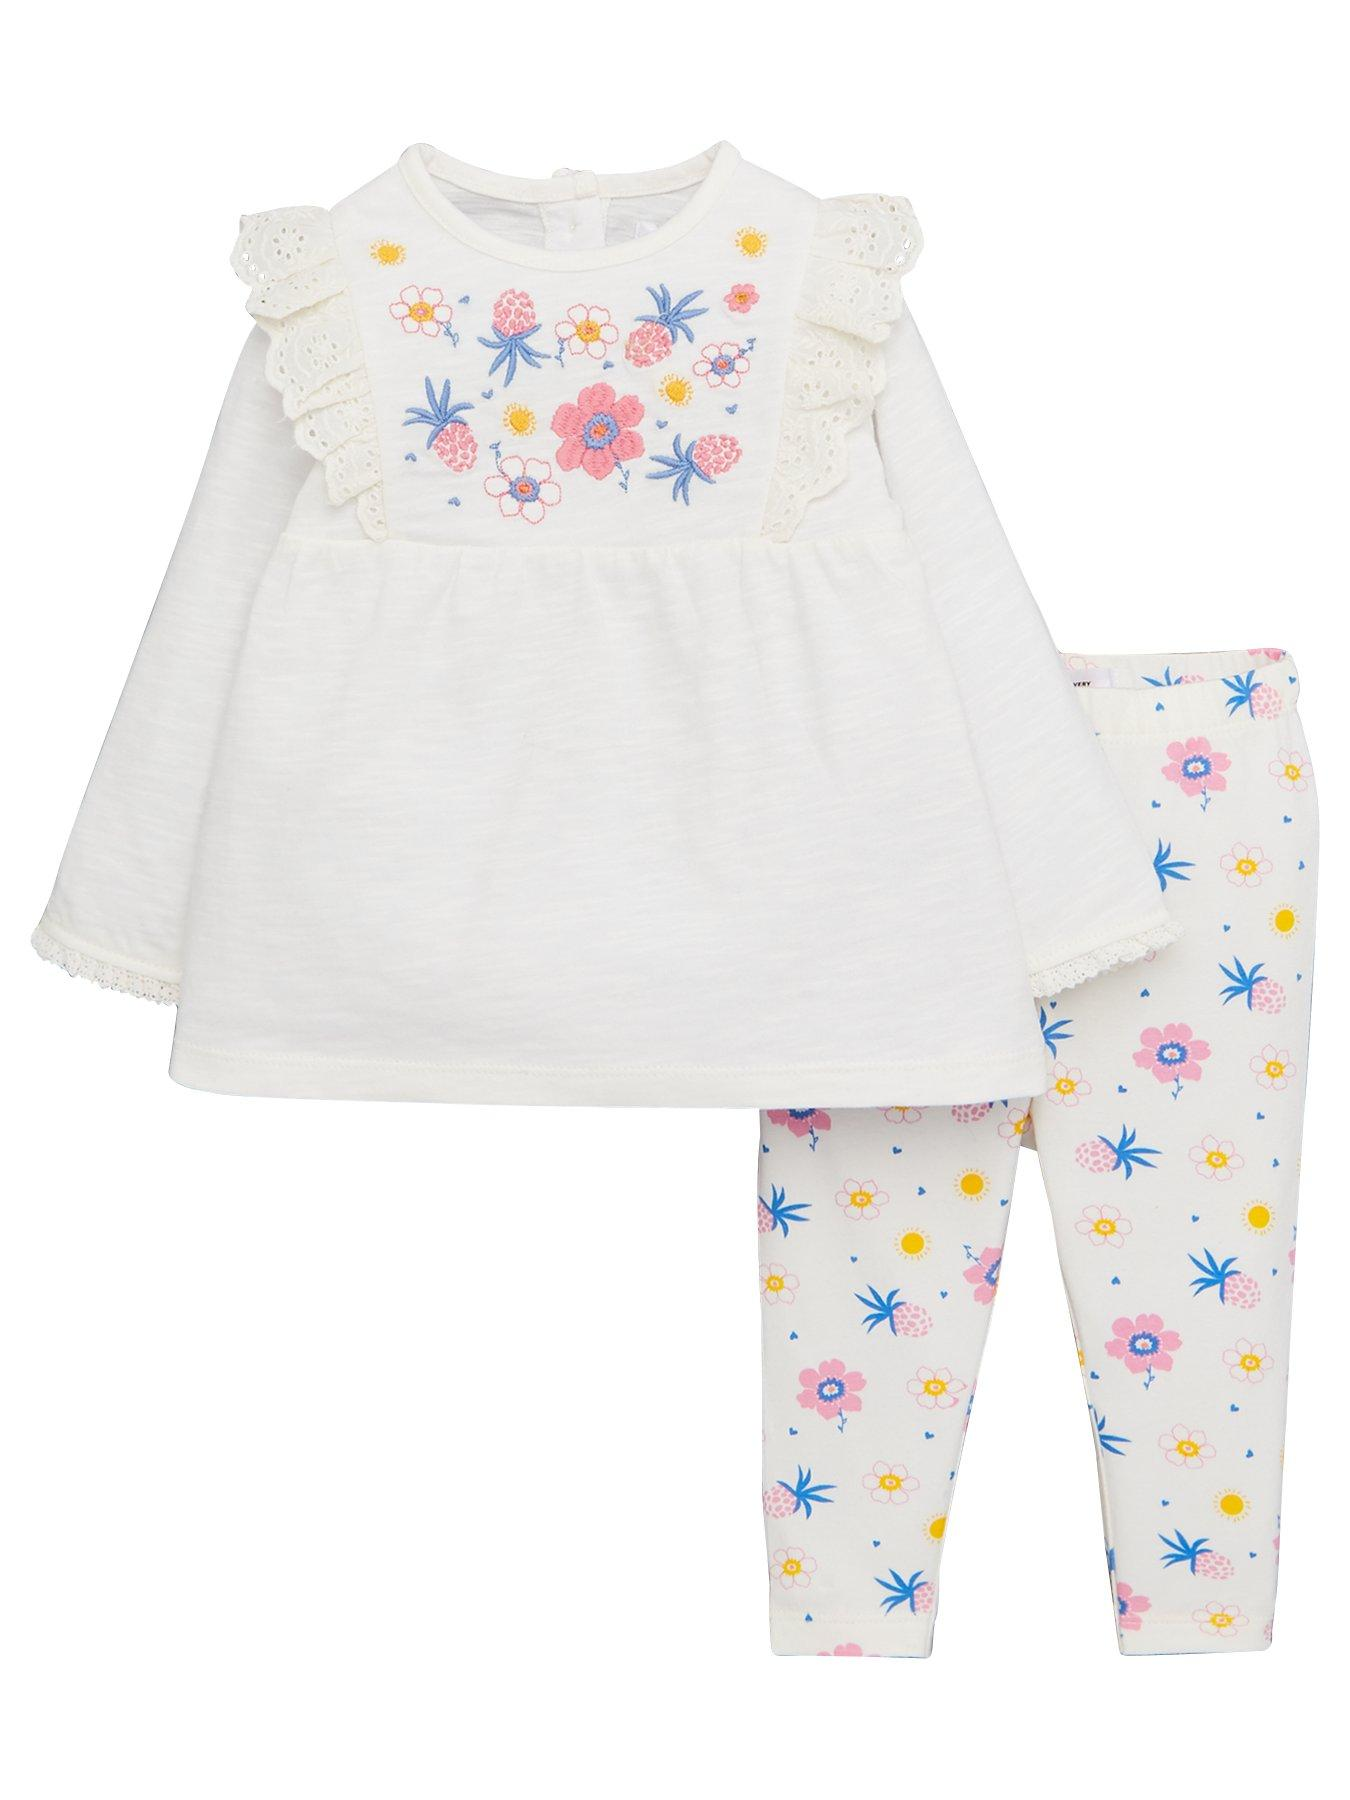 Wiwiane Toddler Kids Baby Girl Long Sleeve Butterfly Print Floral Dress Casual Clothes